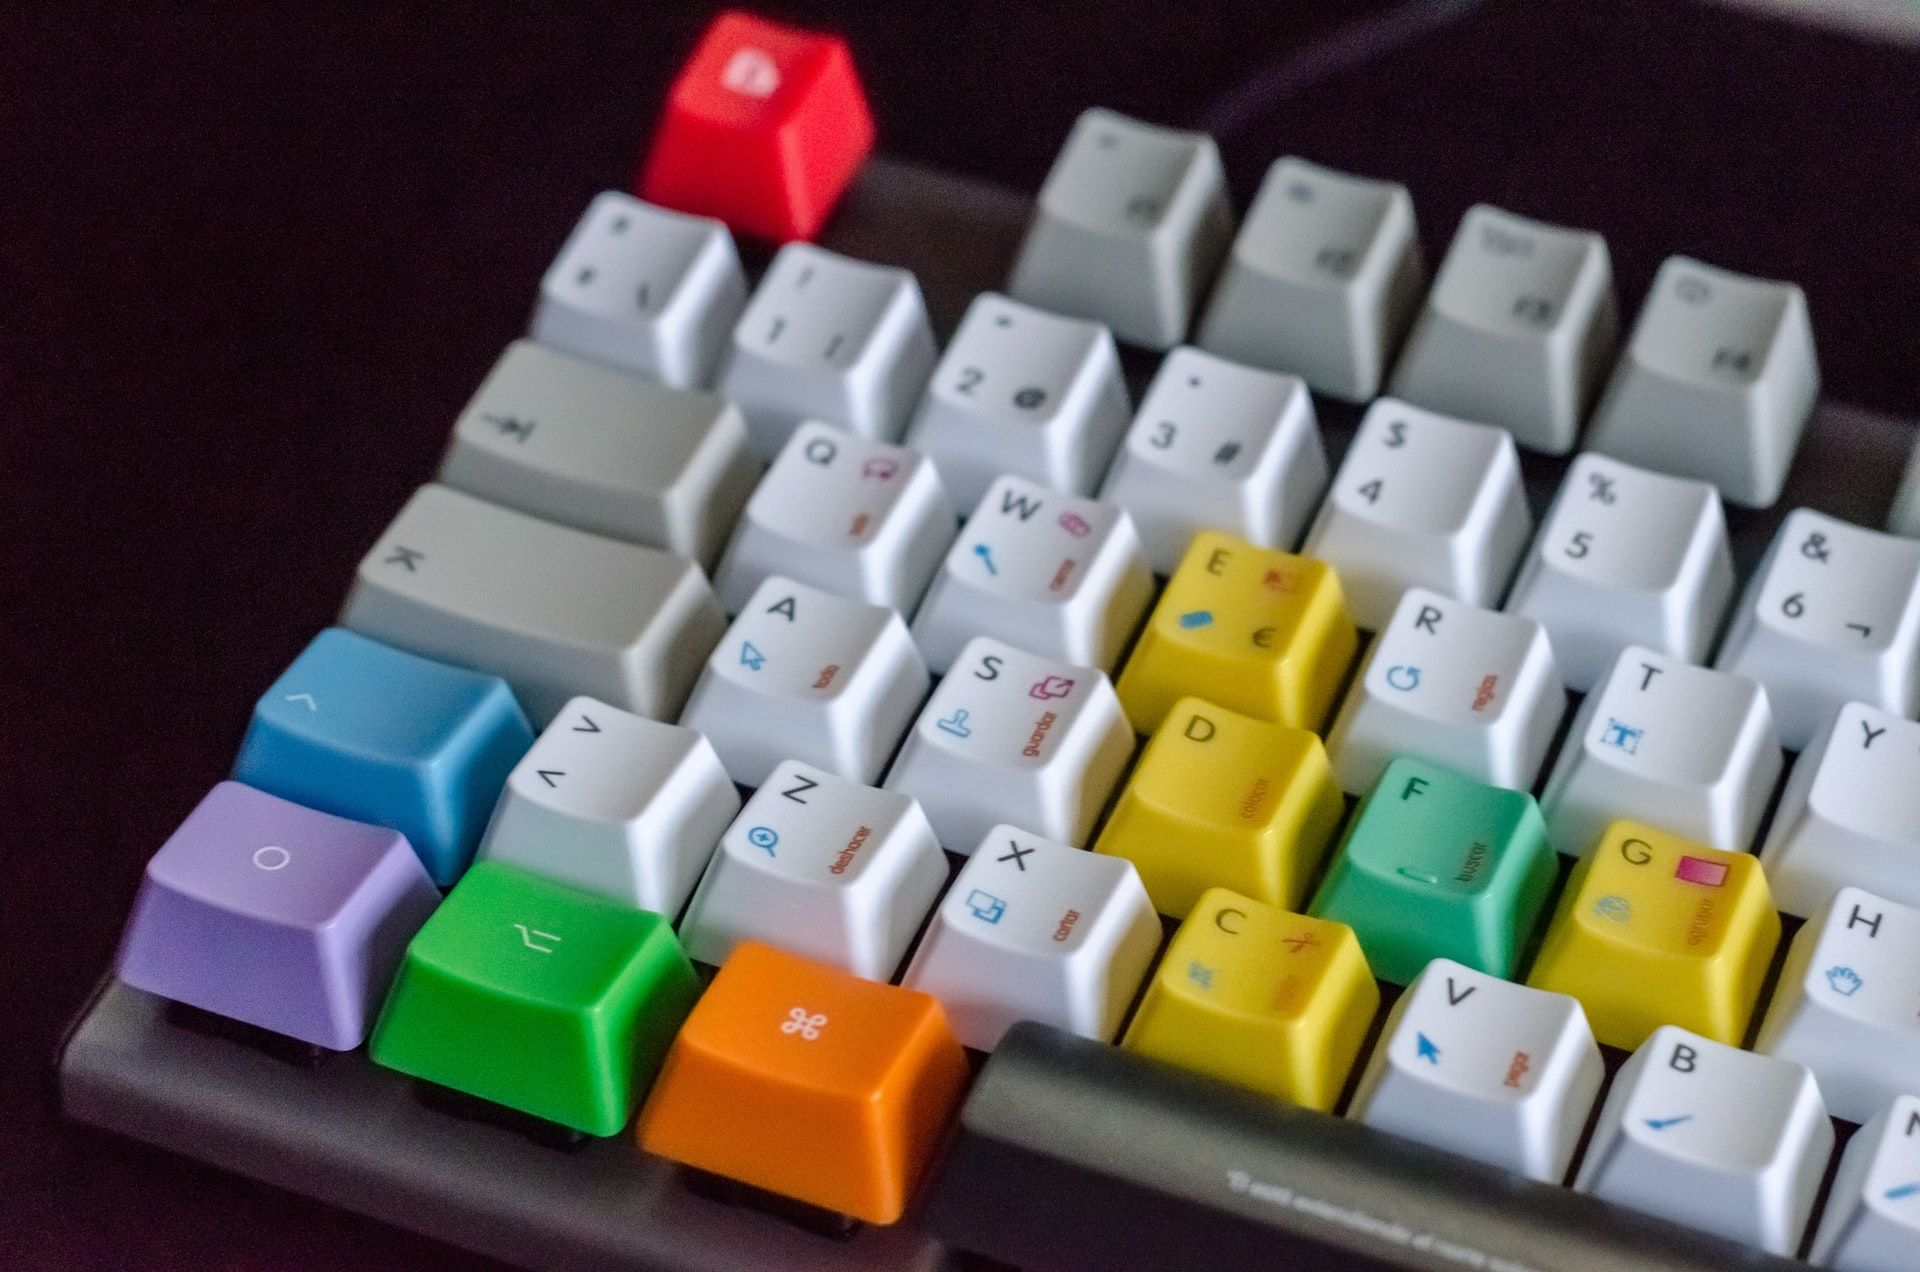 How keyboard shortcuts could revive America's economy